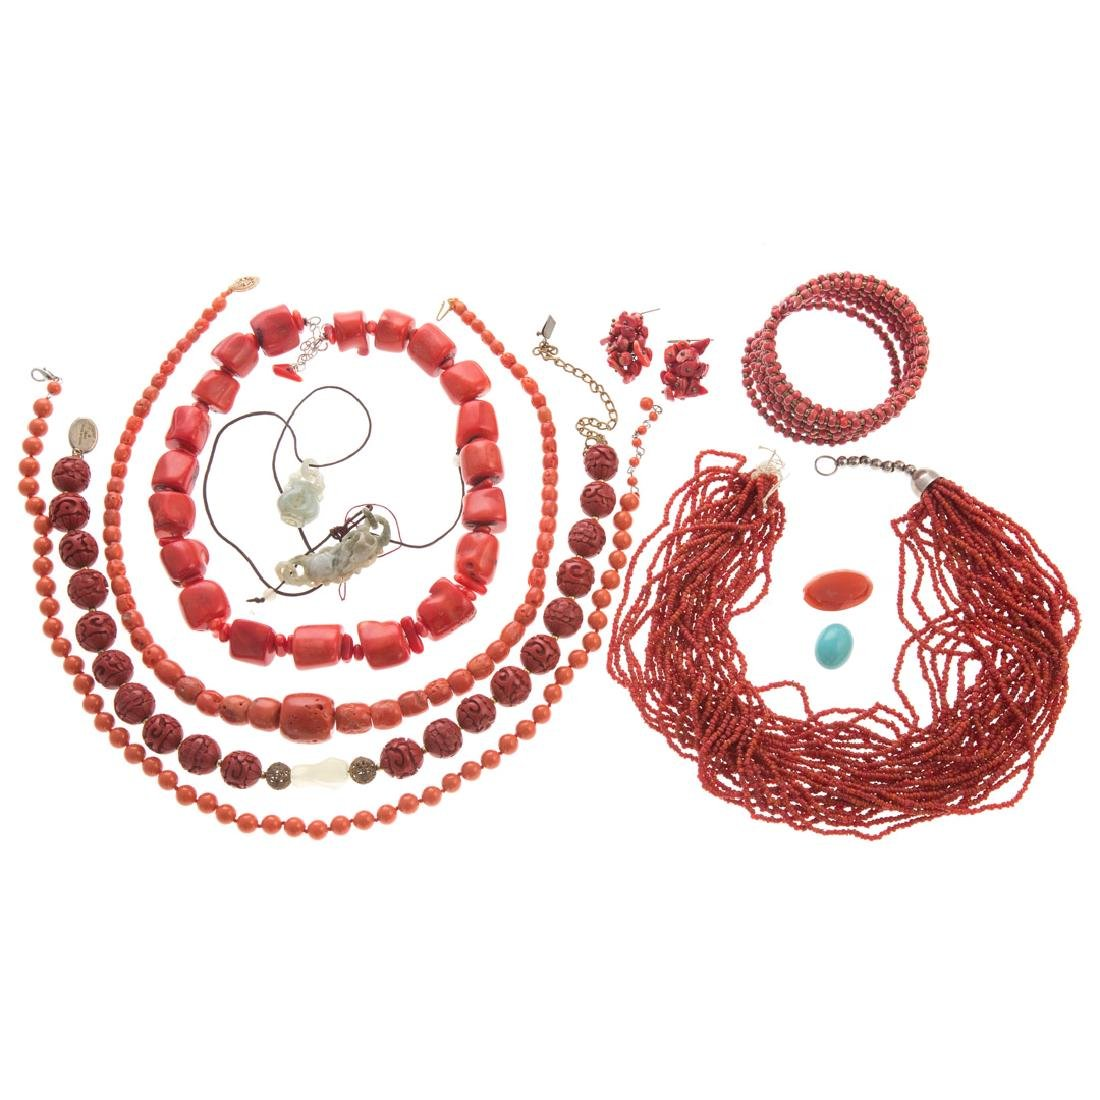 A Collection of Lady's Coral Jewelry